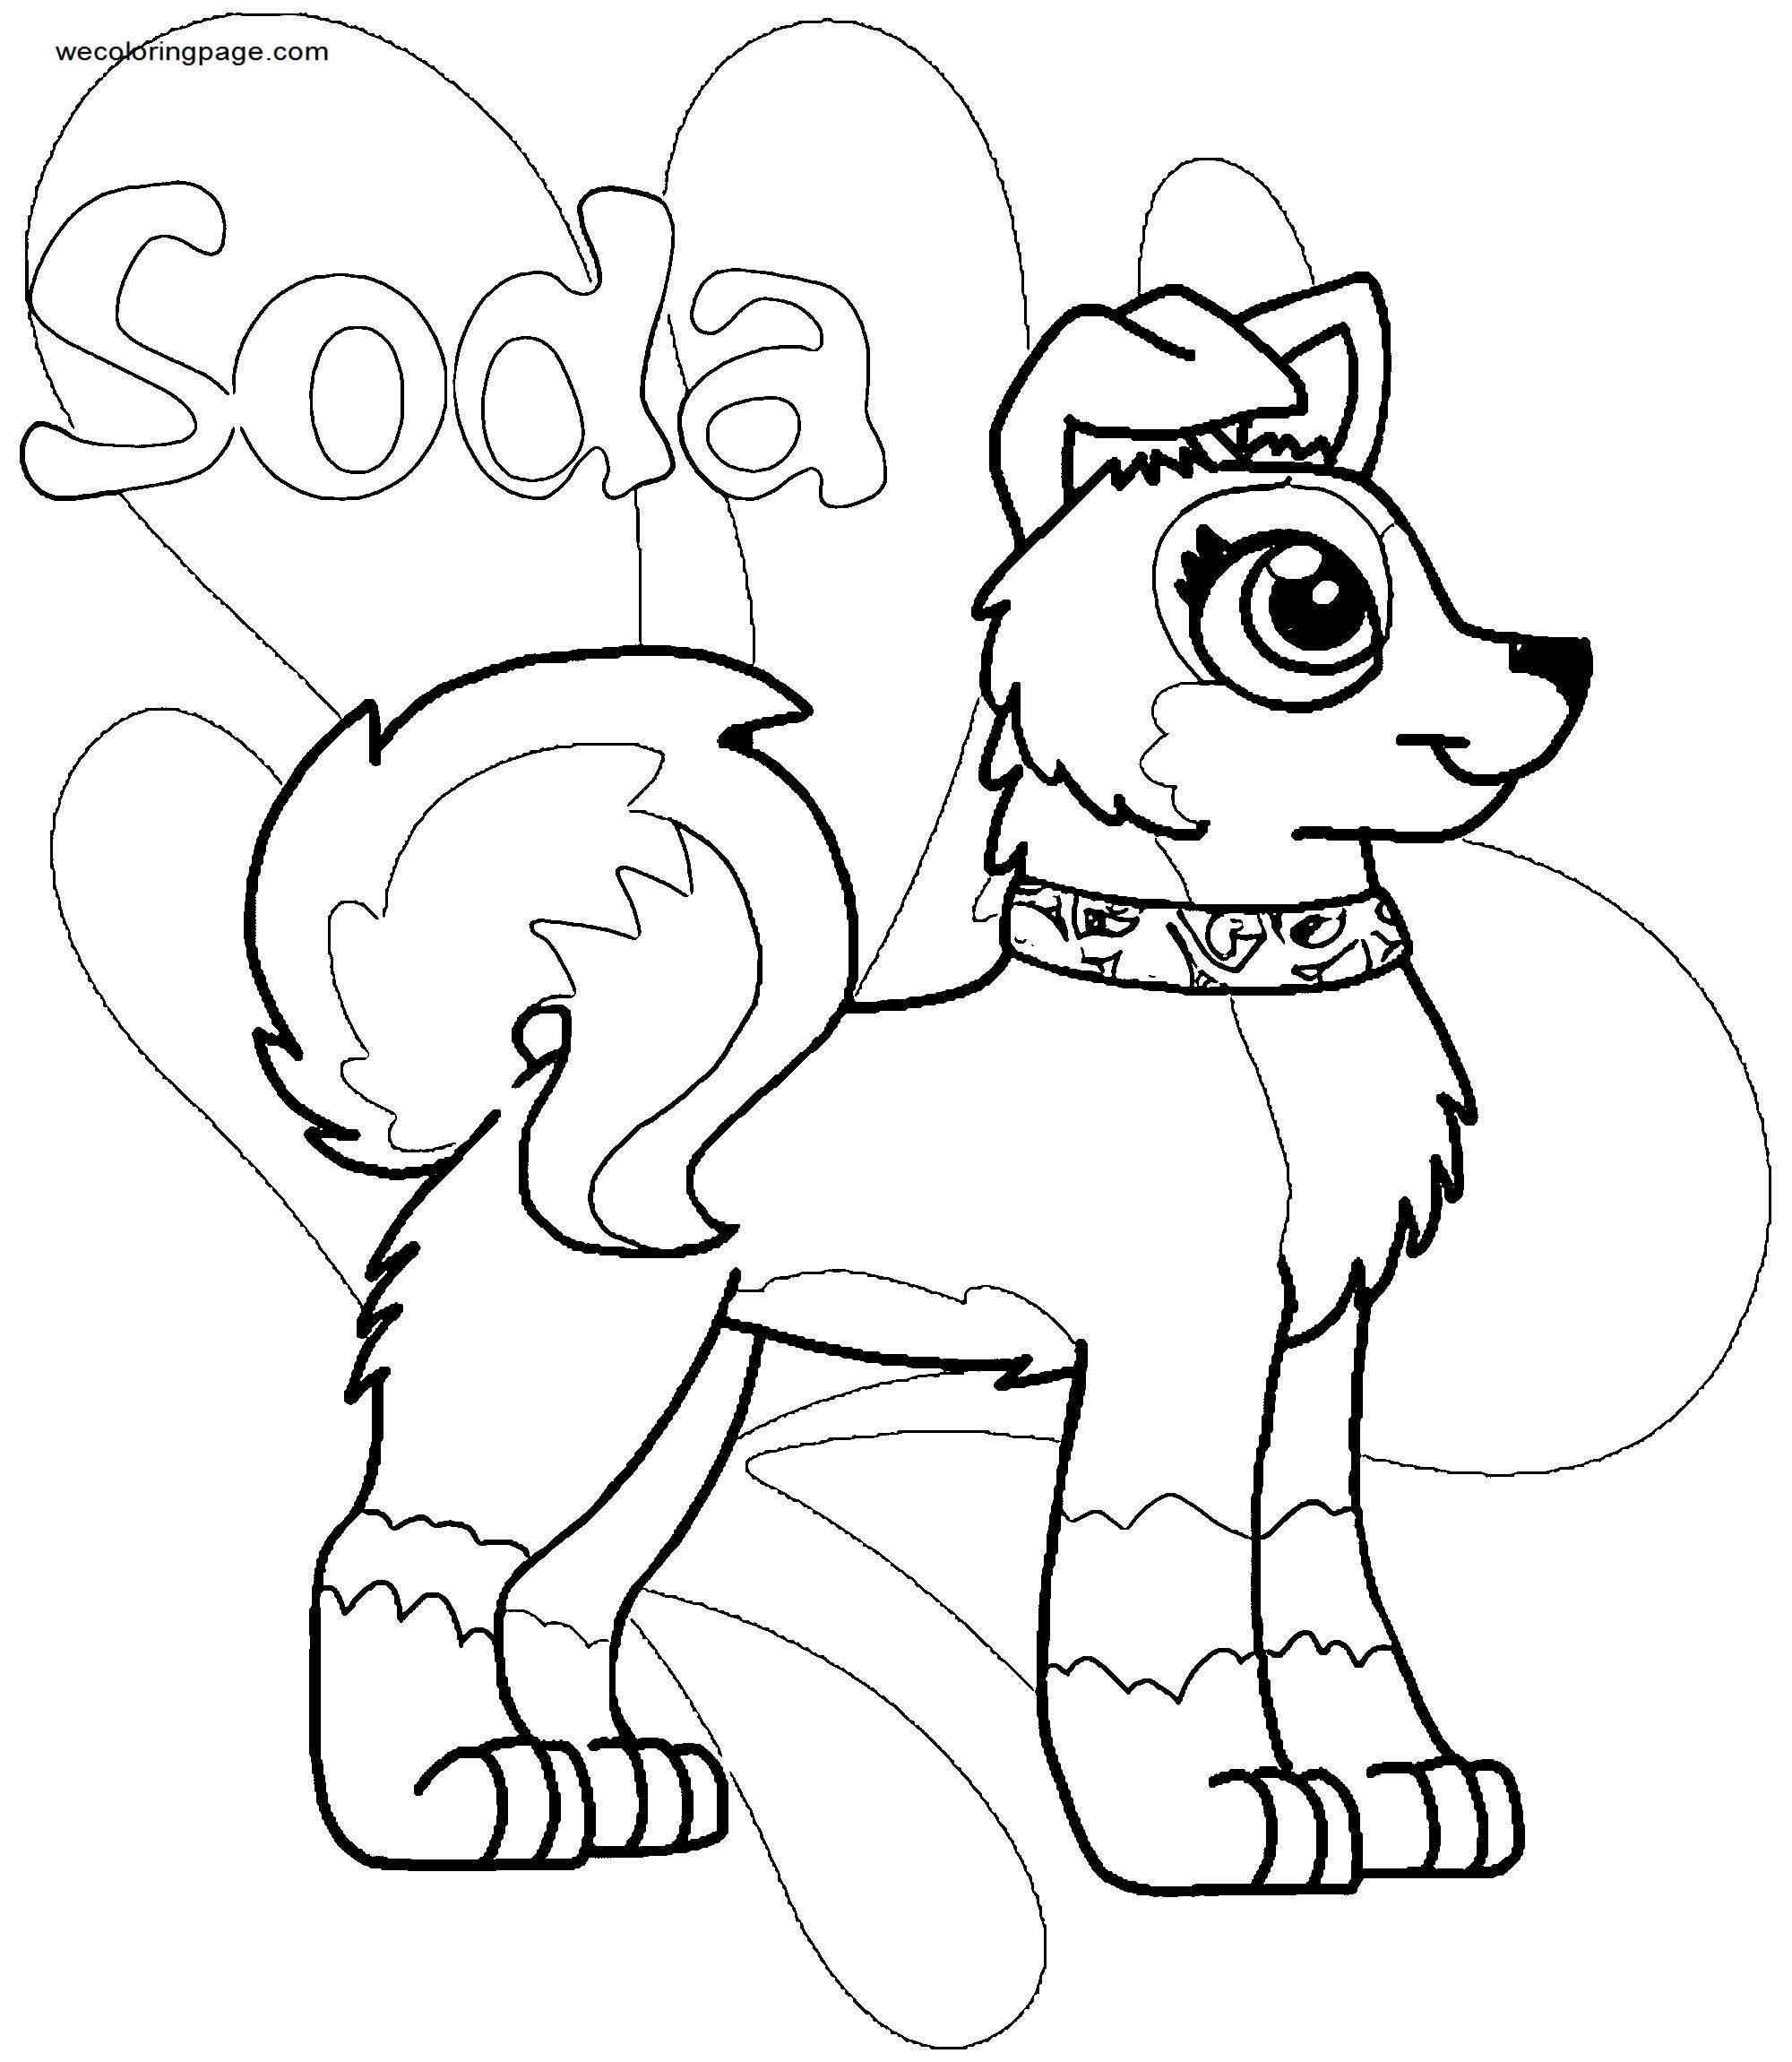 Soda Paw Patrol Dog Coloring Page